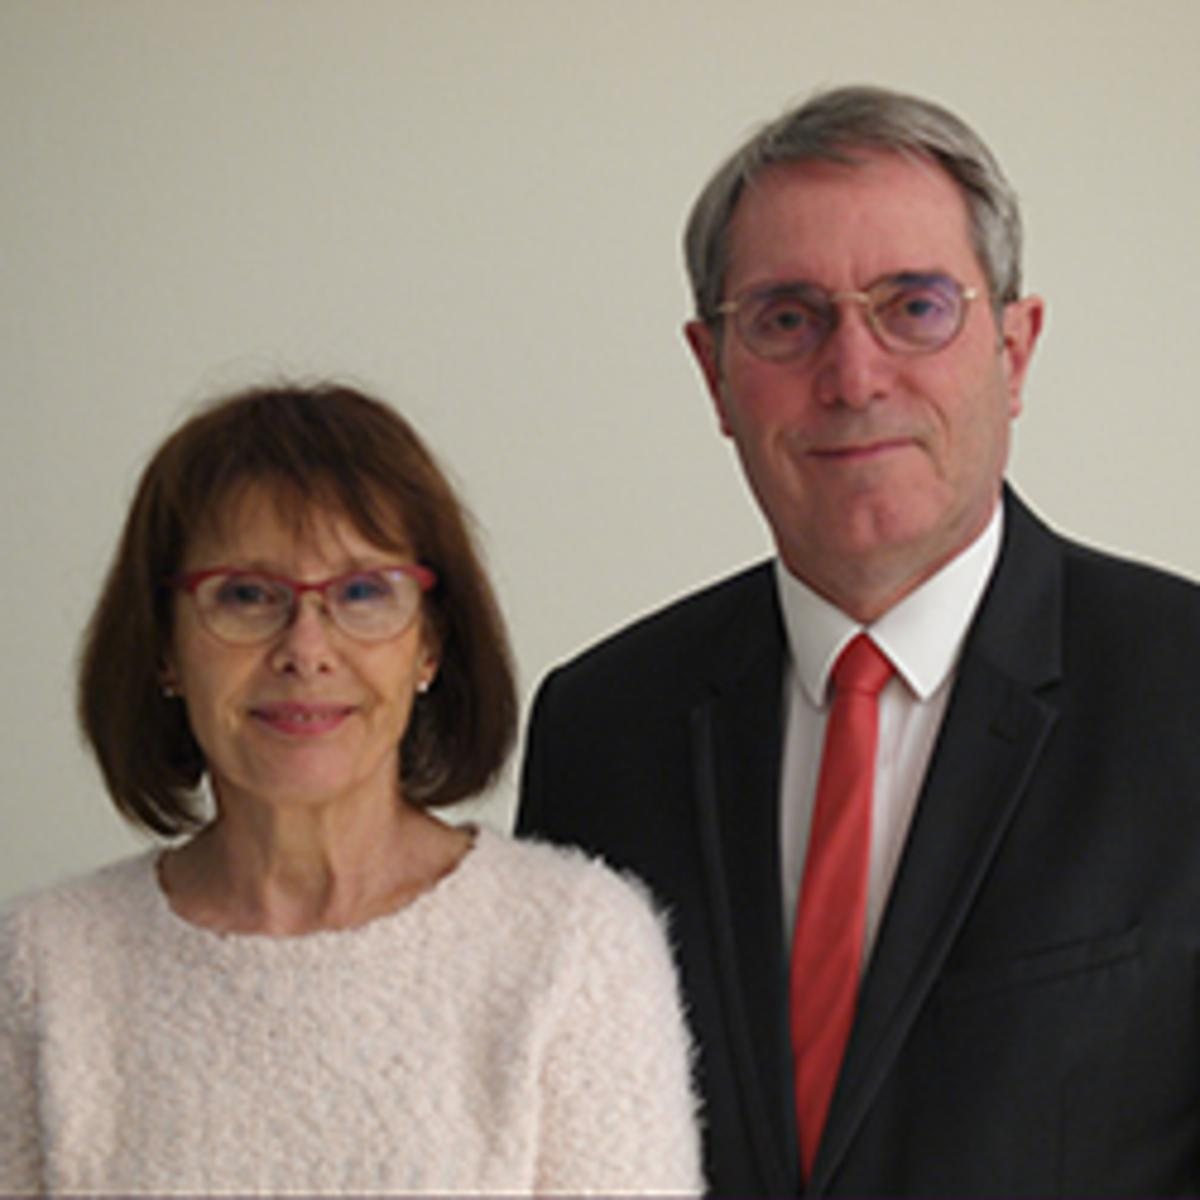 Jean-Marc Bourroux and Monique Lenormand Bourroux